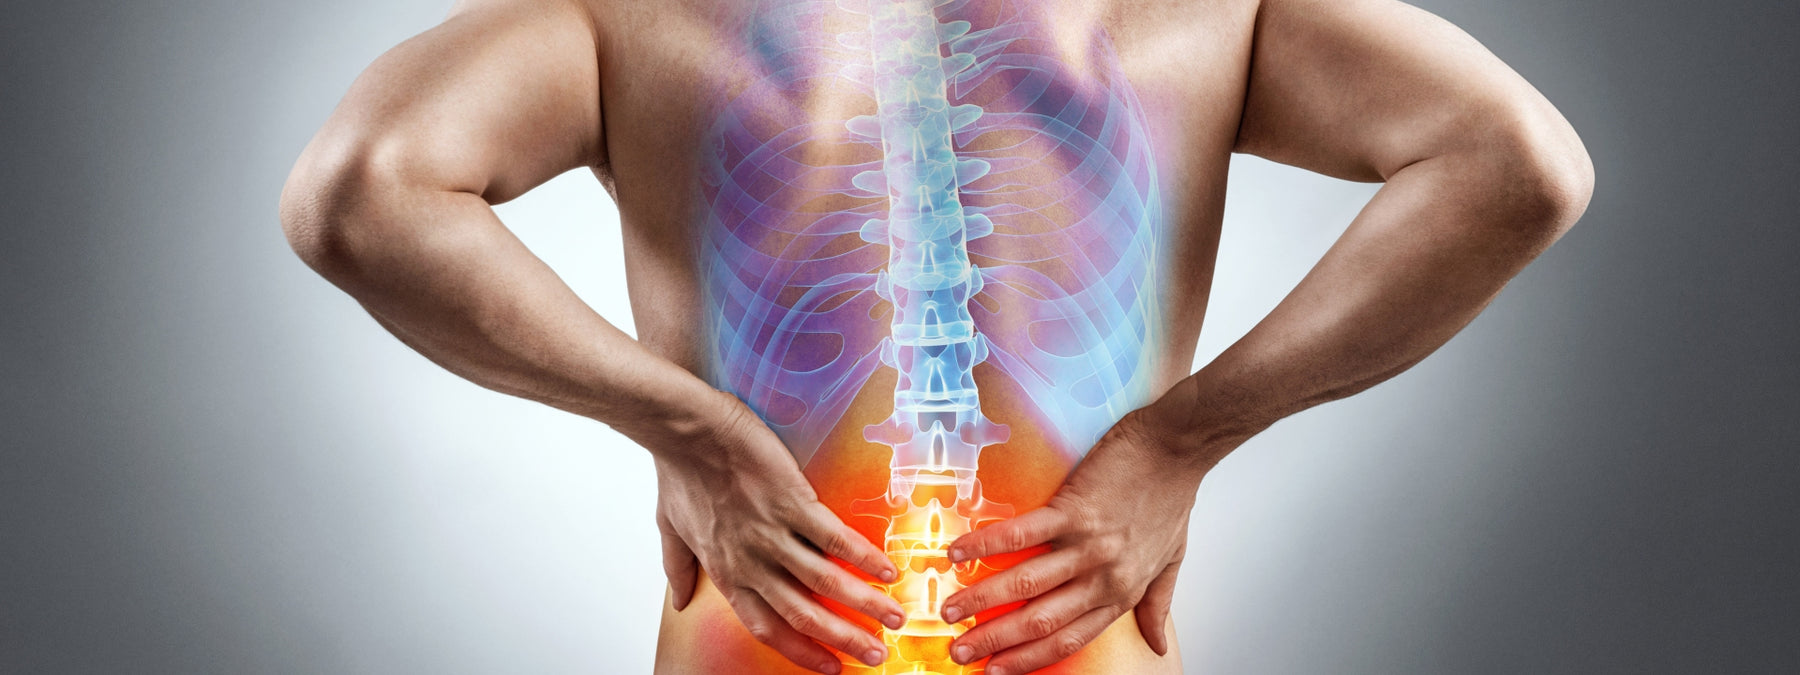 Ease Lower Back Pain Now With These 10 Simple Exercises